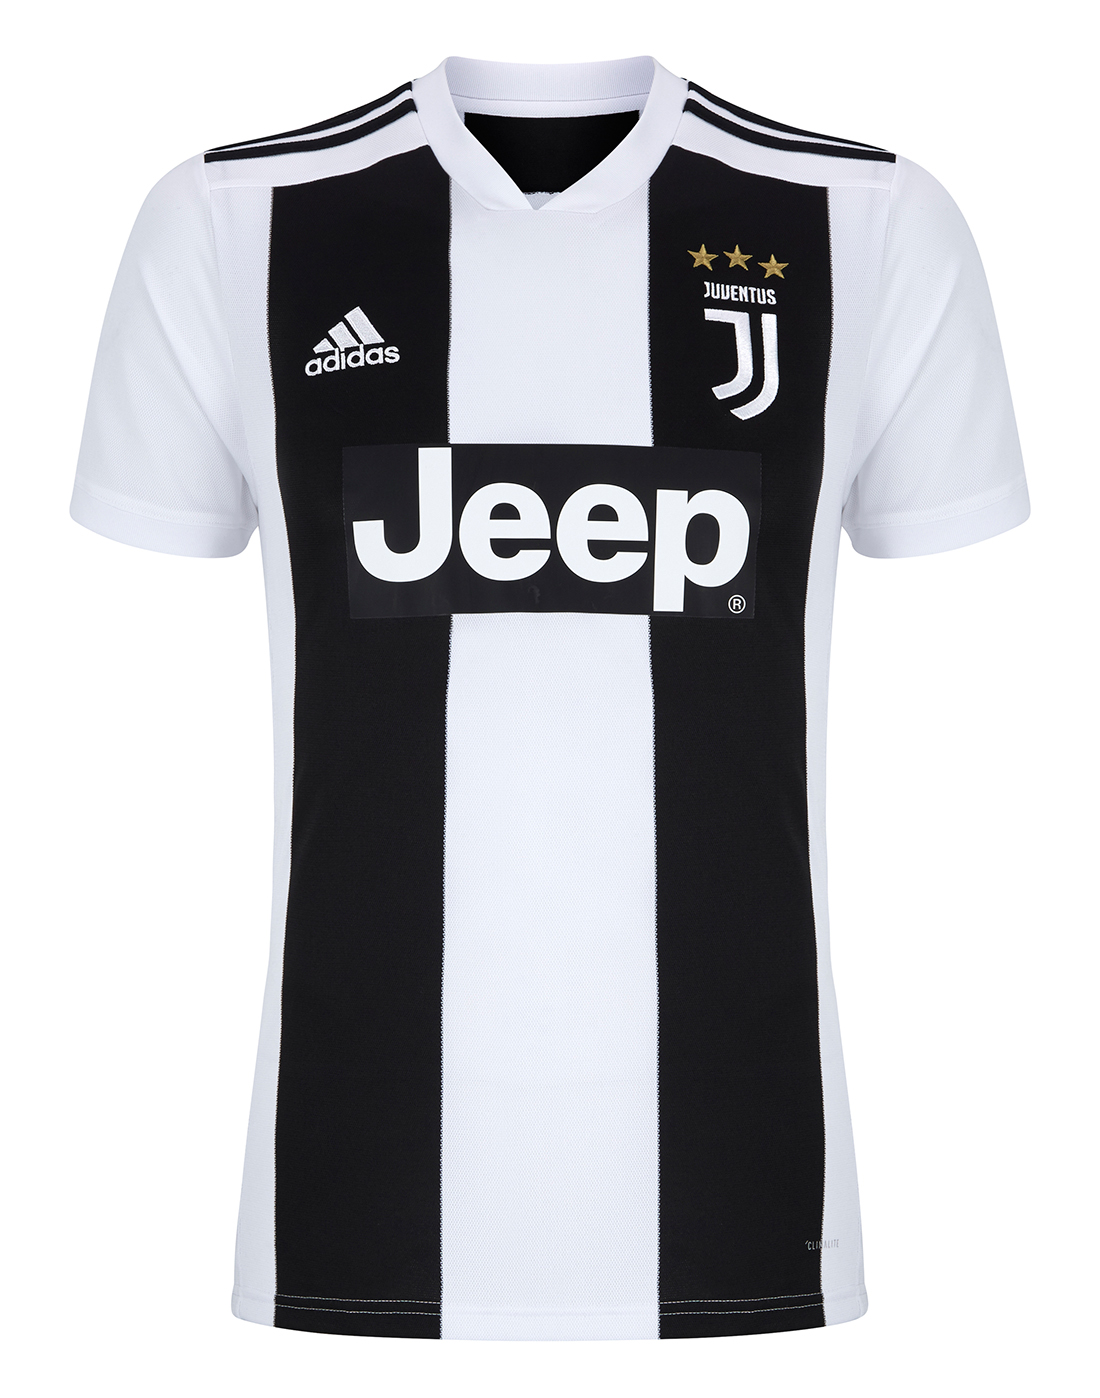 5ae3b3f13 Adults Juventus 18 19 Home Jersey ...